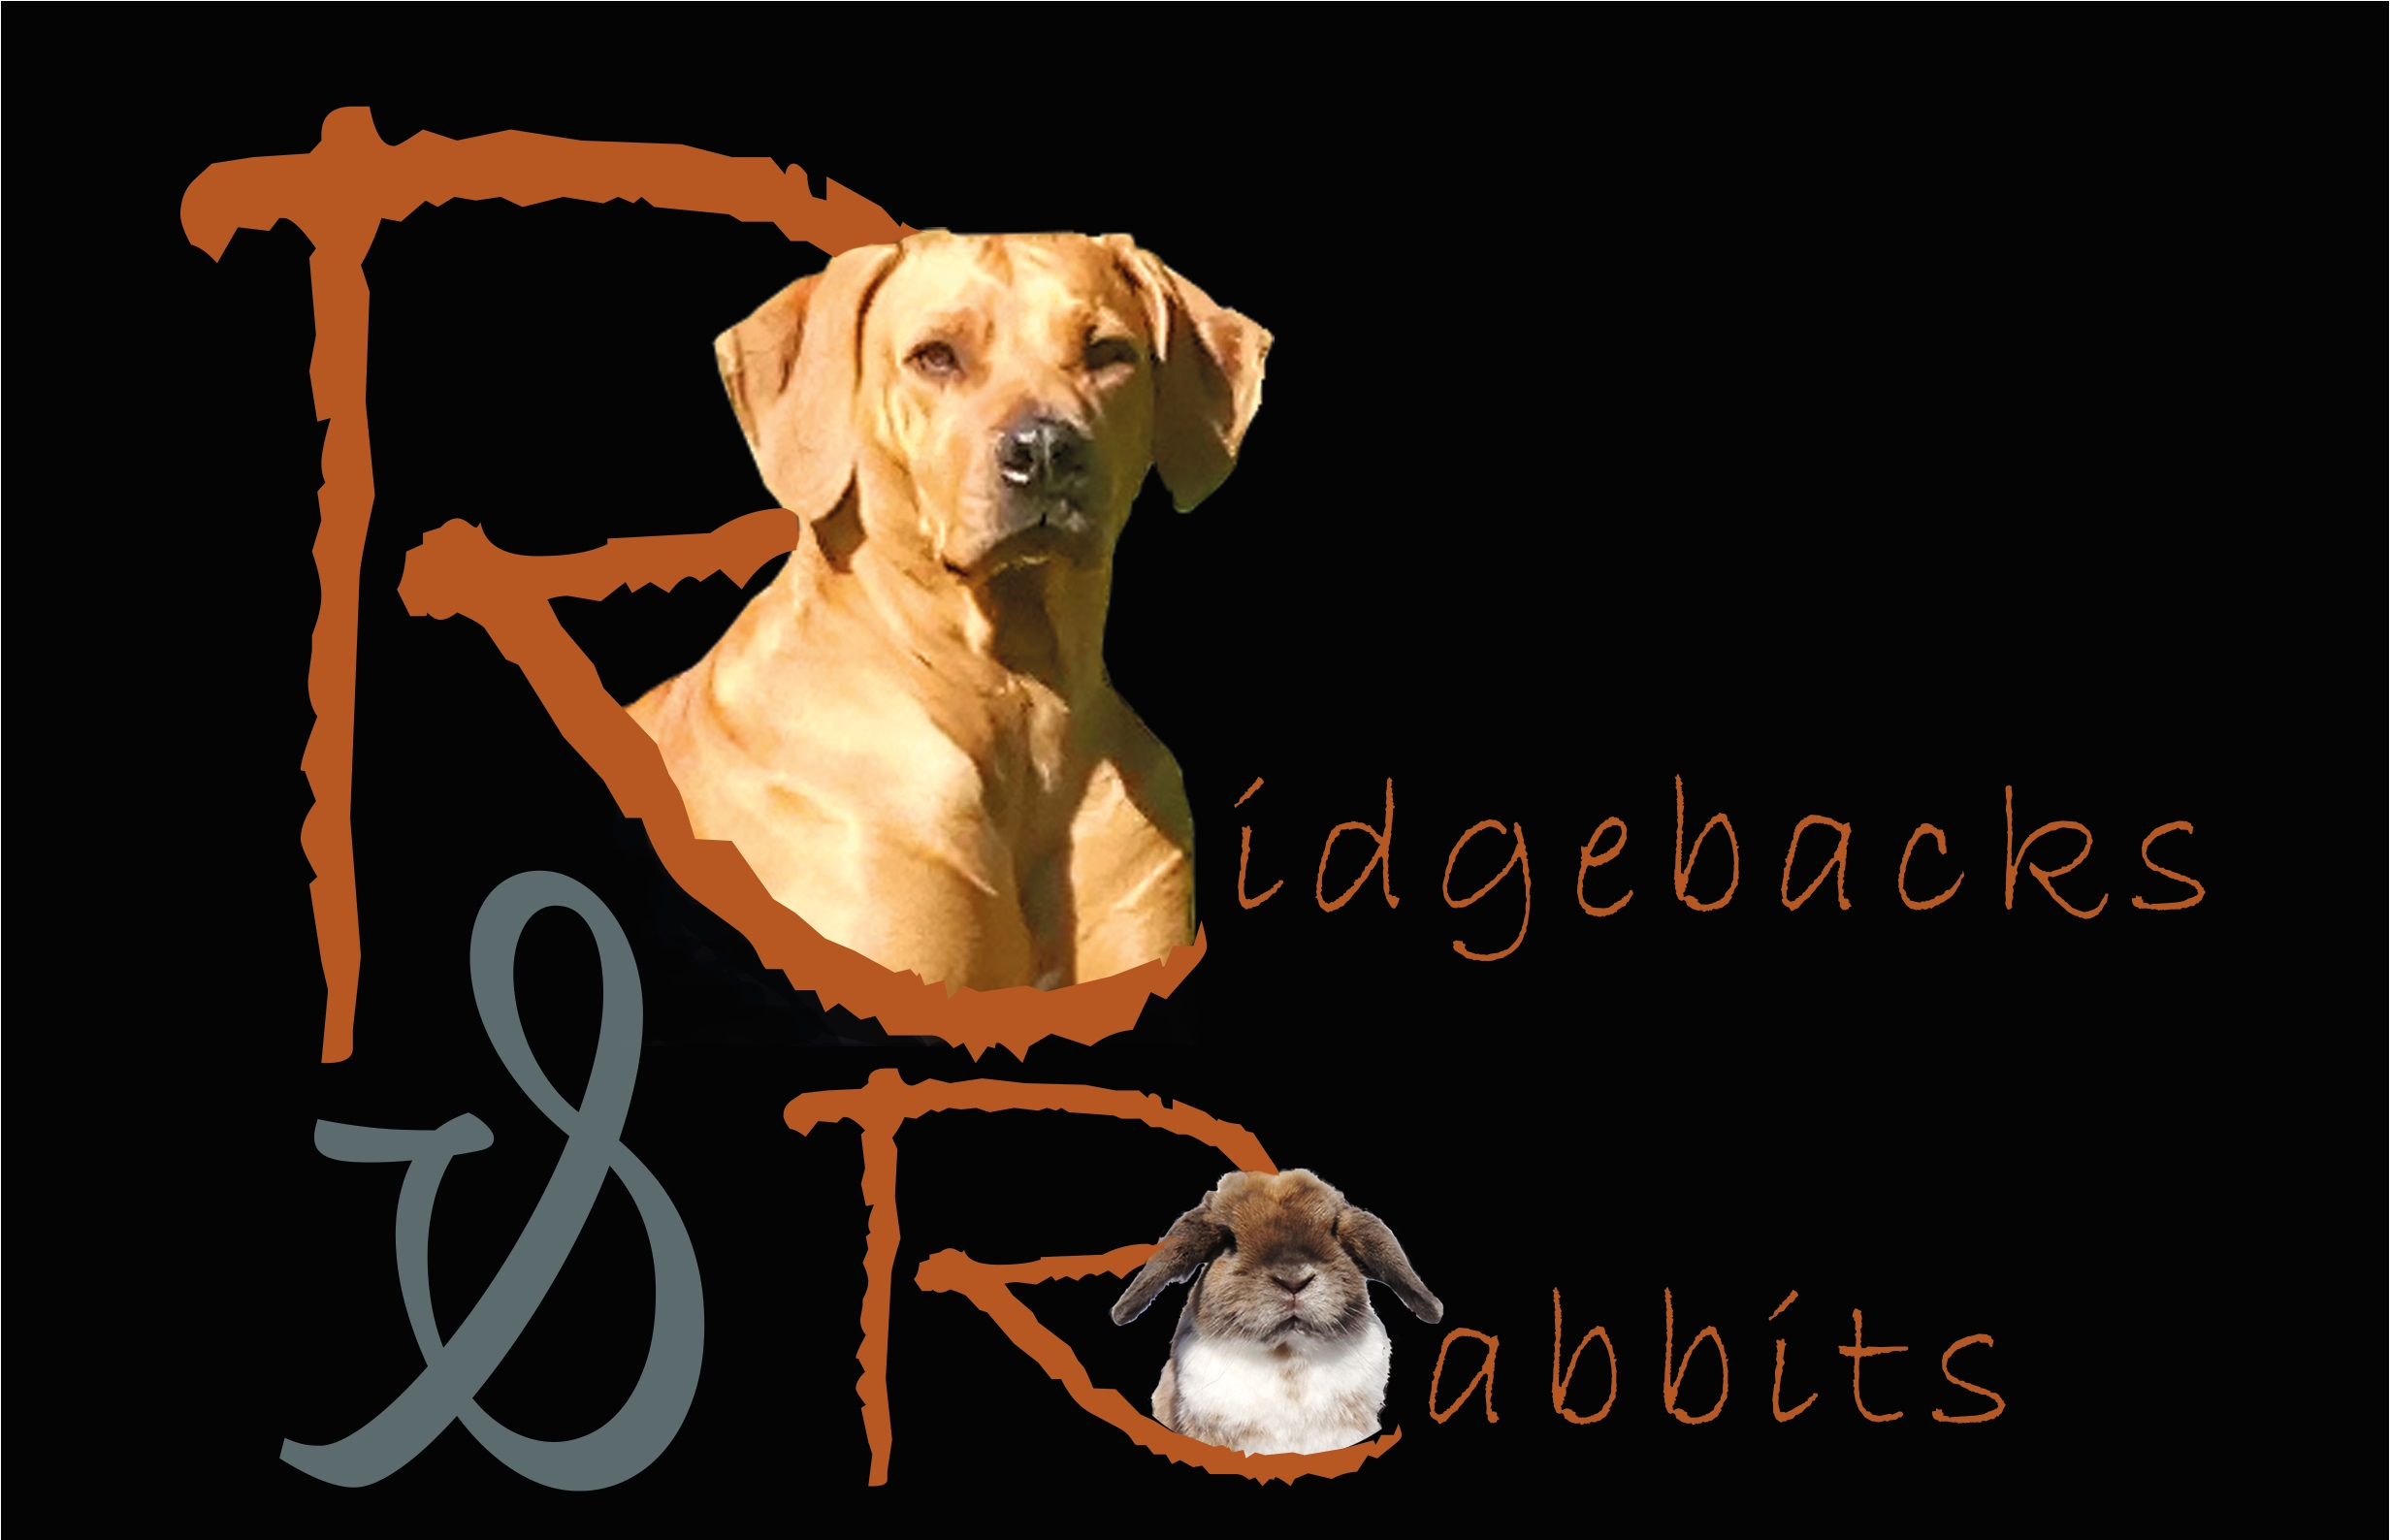 Ridgebacks & Rabbits